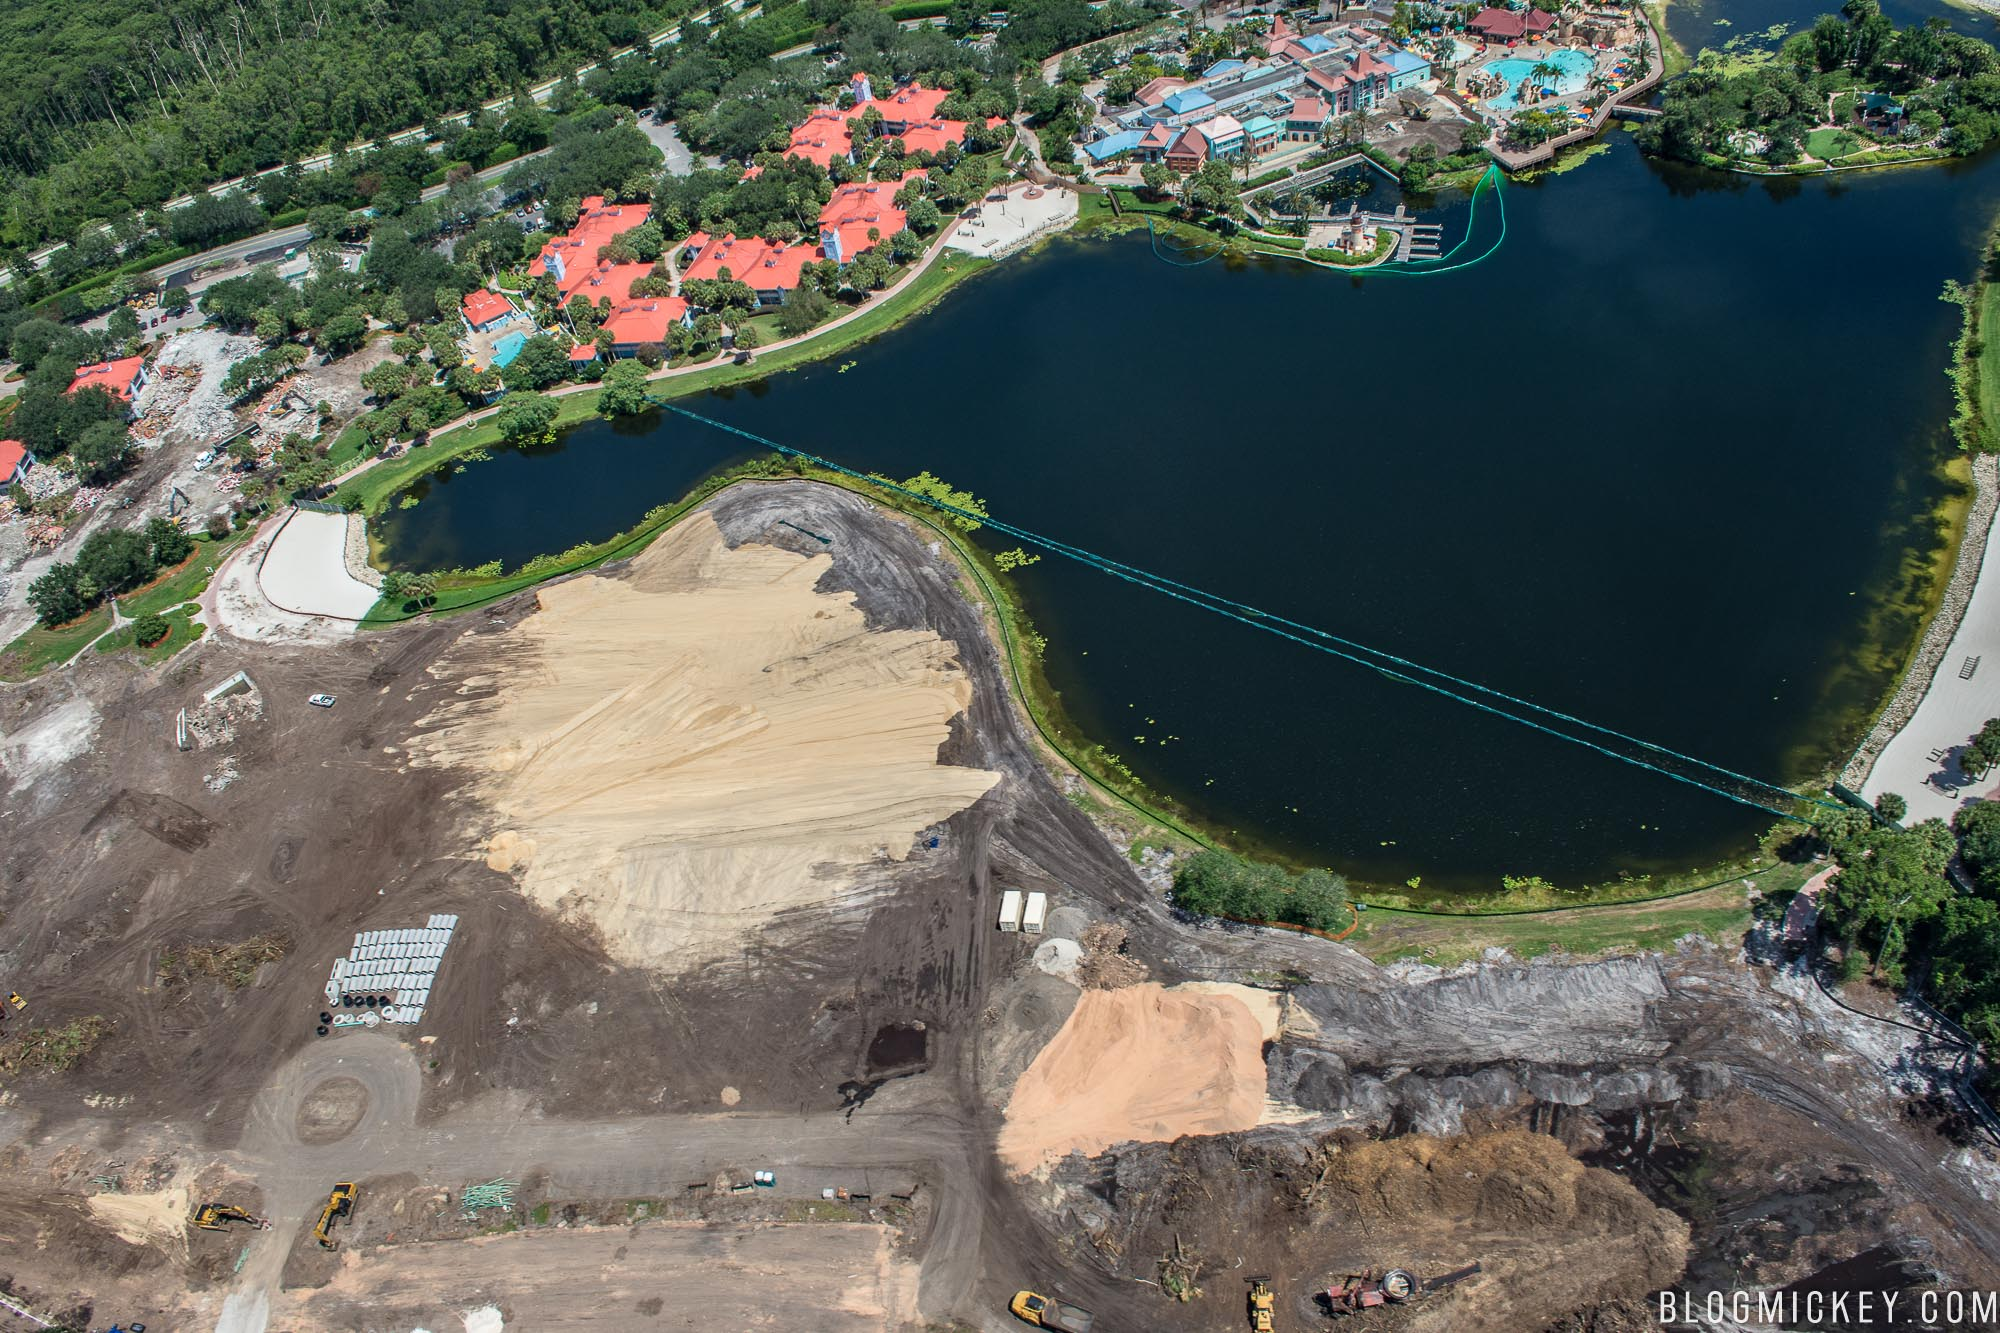 We Ll Be Sure To Include This Mive Expansion Of Caribbean Beach In Future Aerial Flight Updates On Blog Mickey As Watch The Tower Rise Out